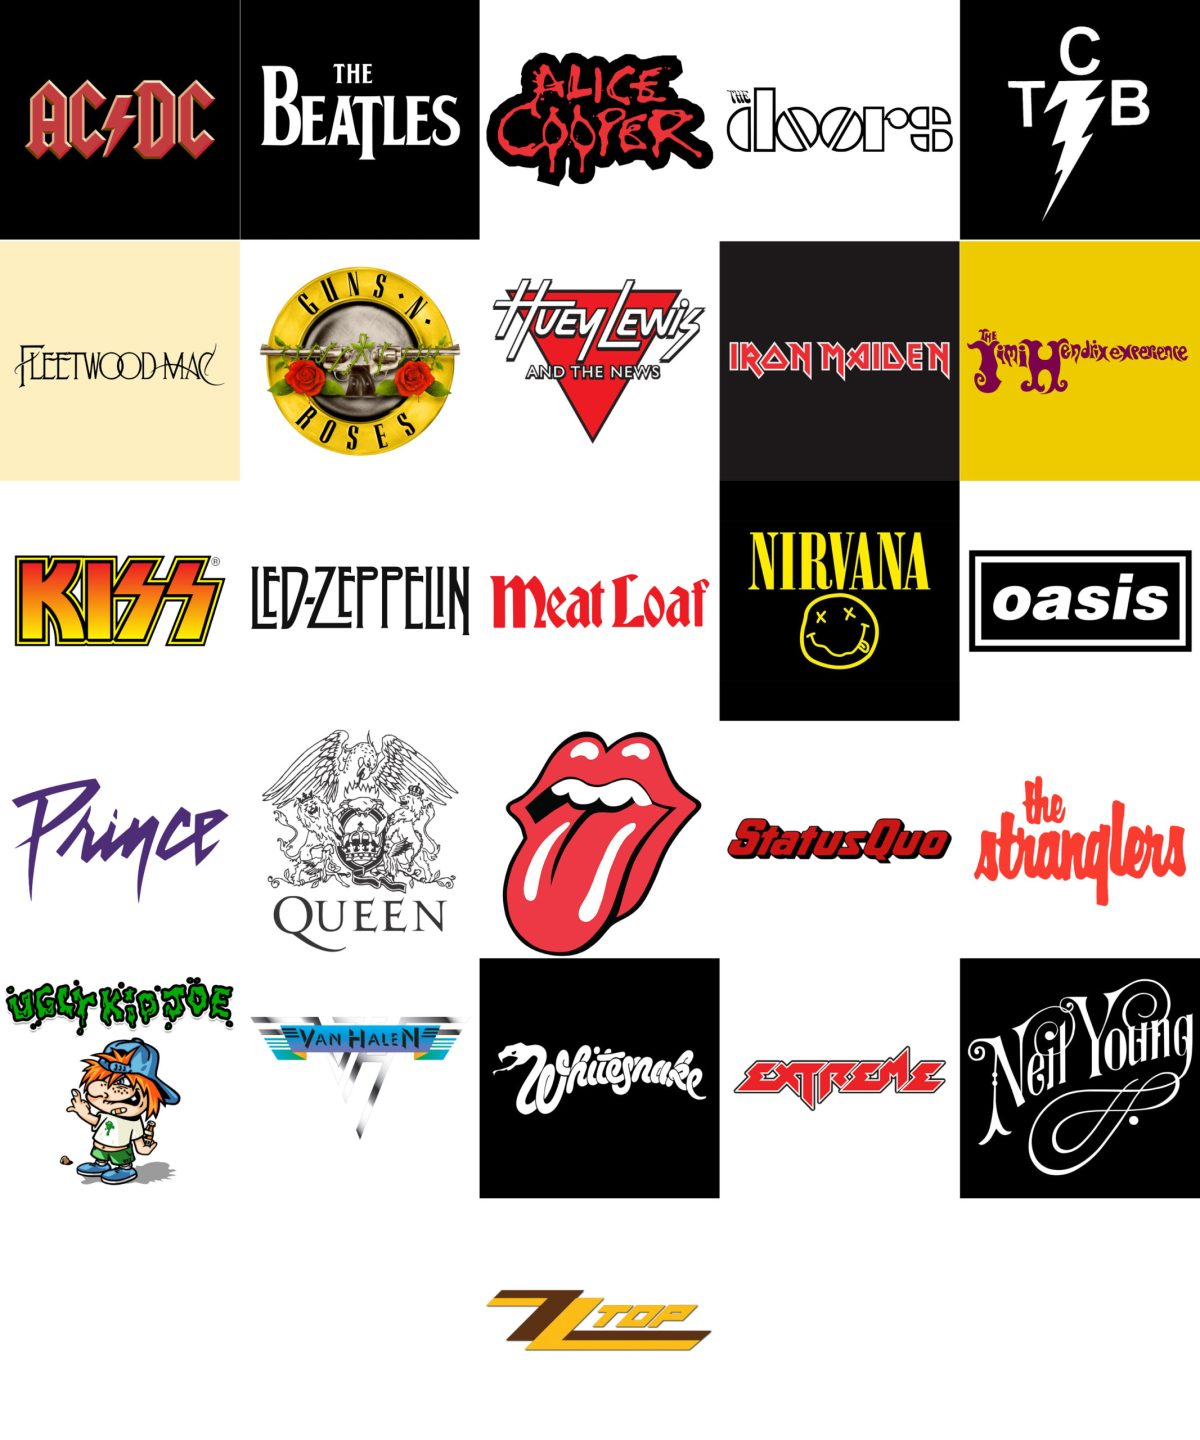 Grid of band logos used in the Bands quiz